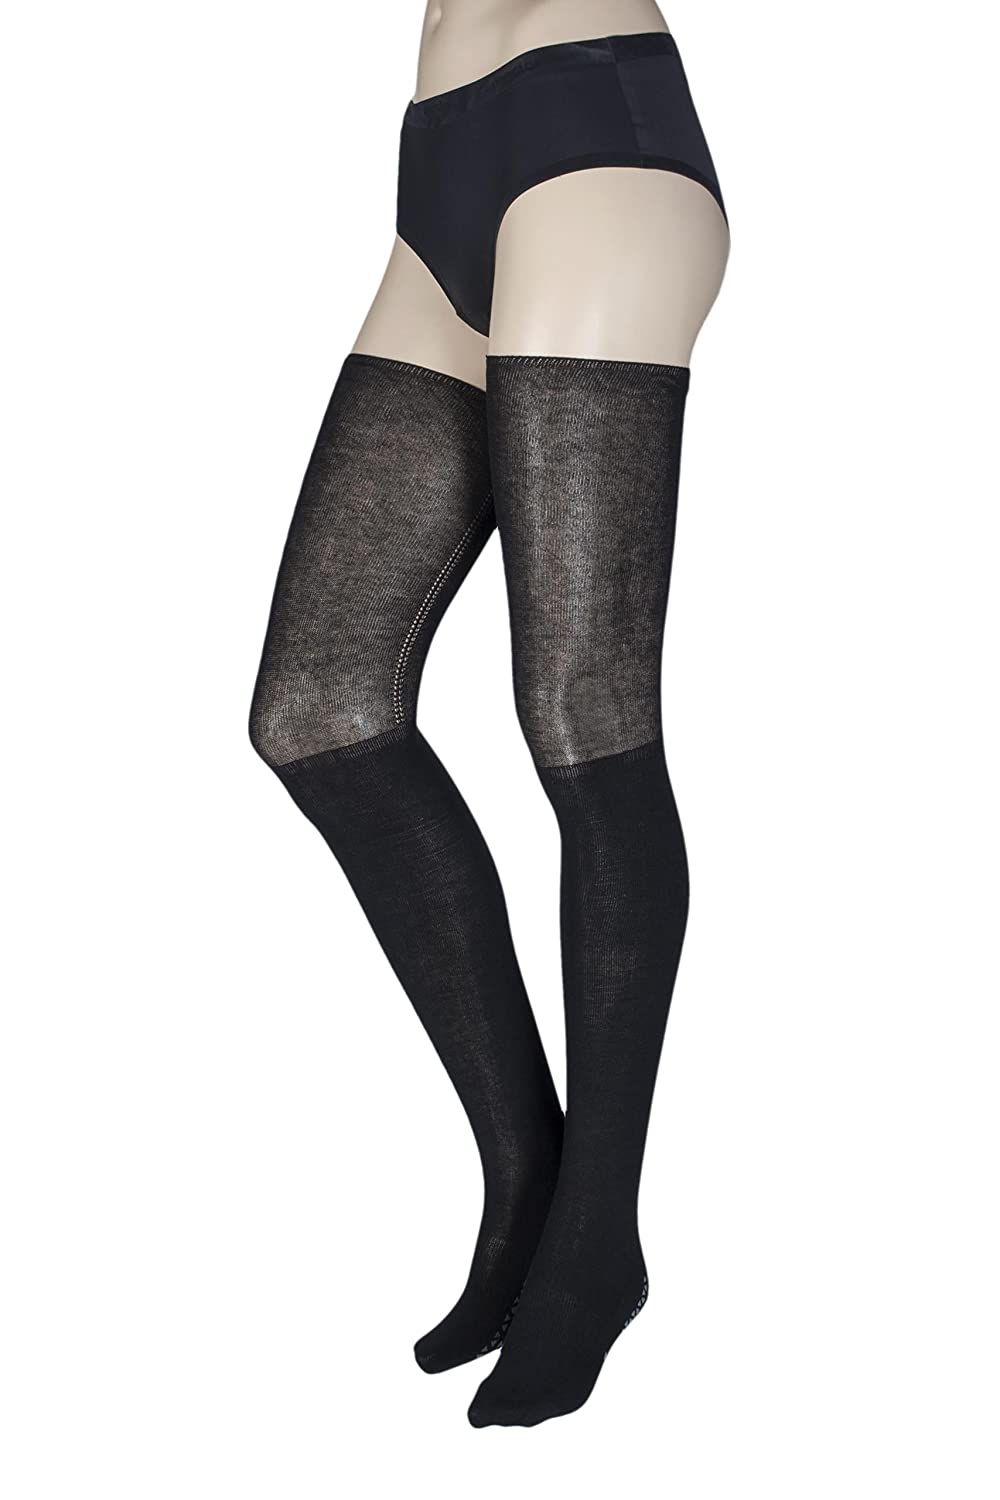 Grip Barre & Yoga Socks - Tavi Noir Women's Charlie Non-Slip Knee High Sock